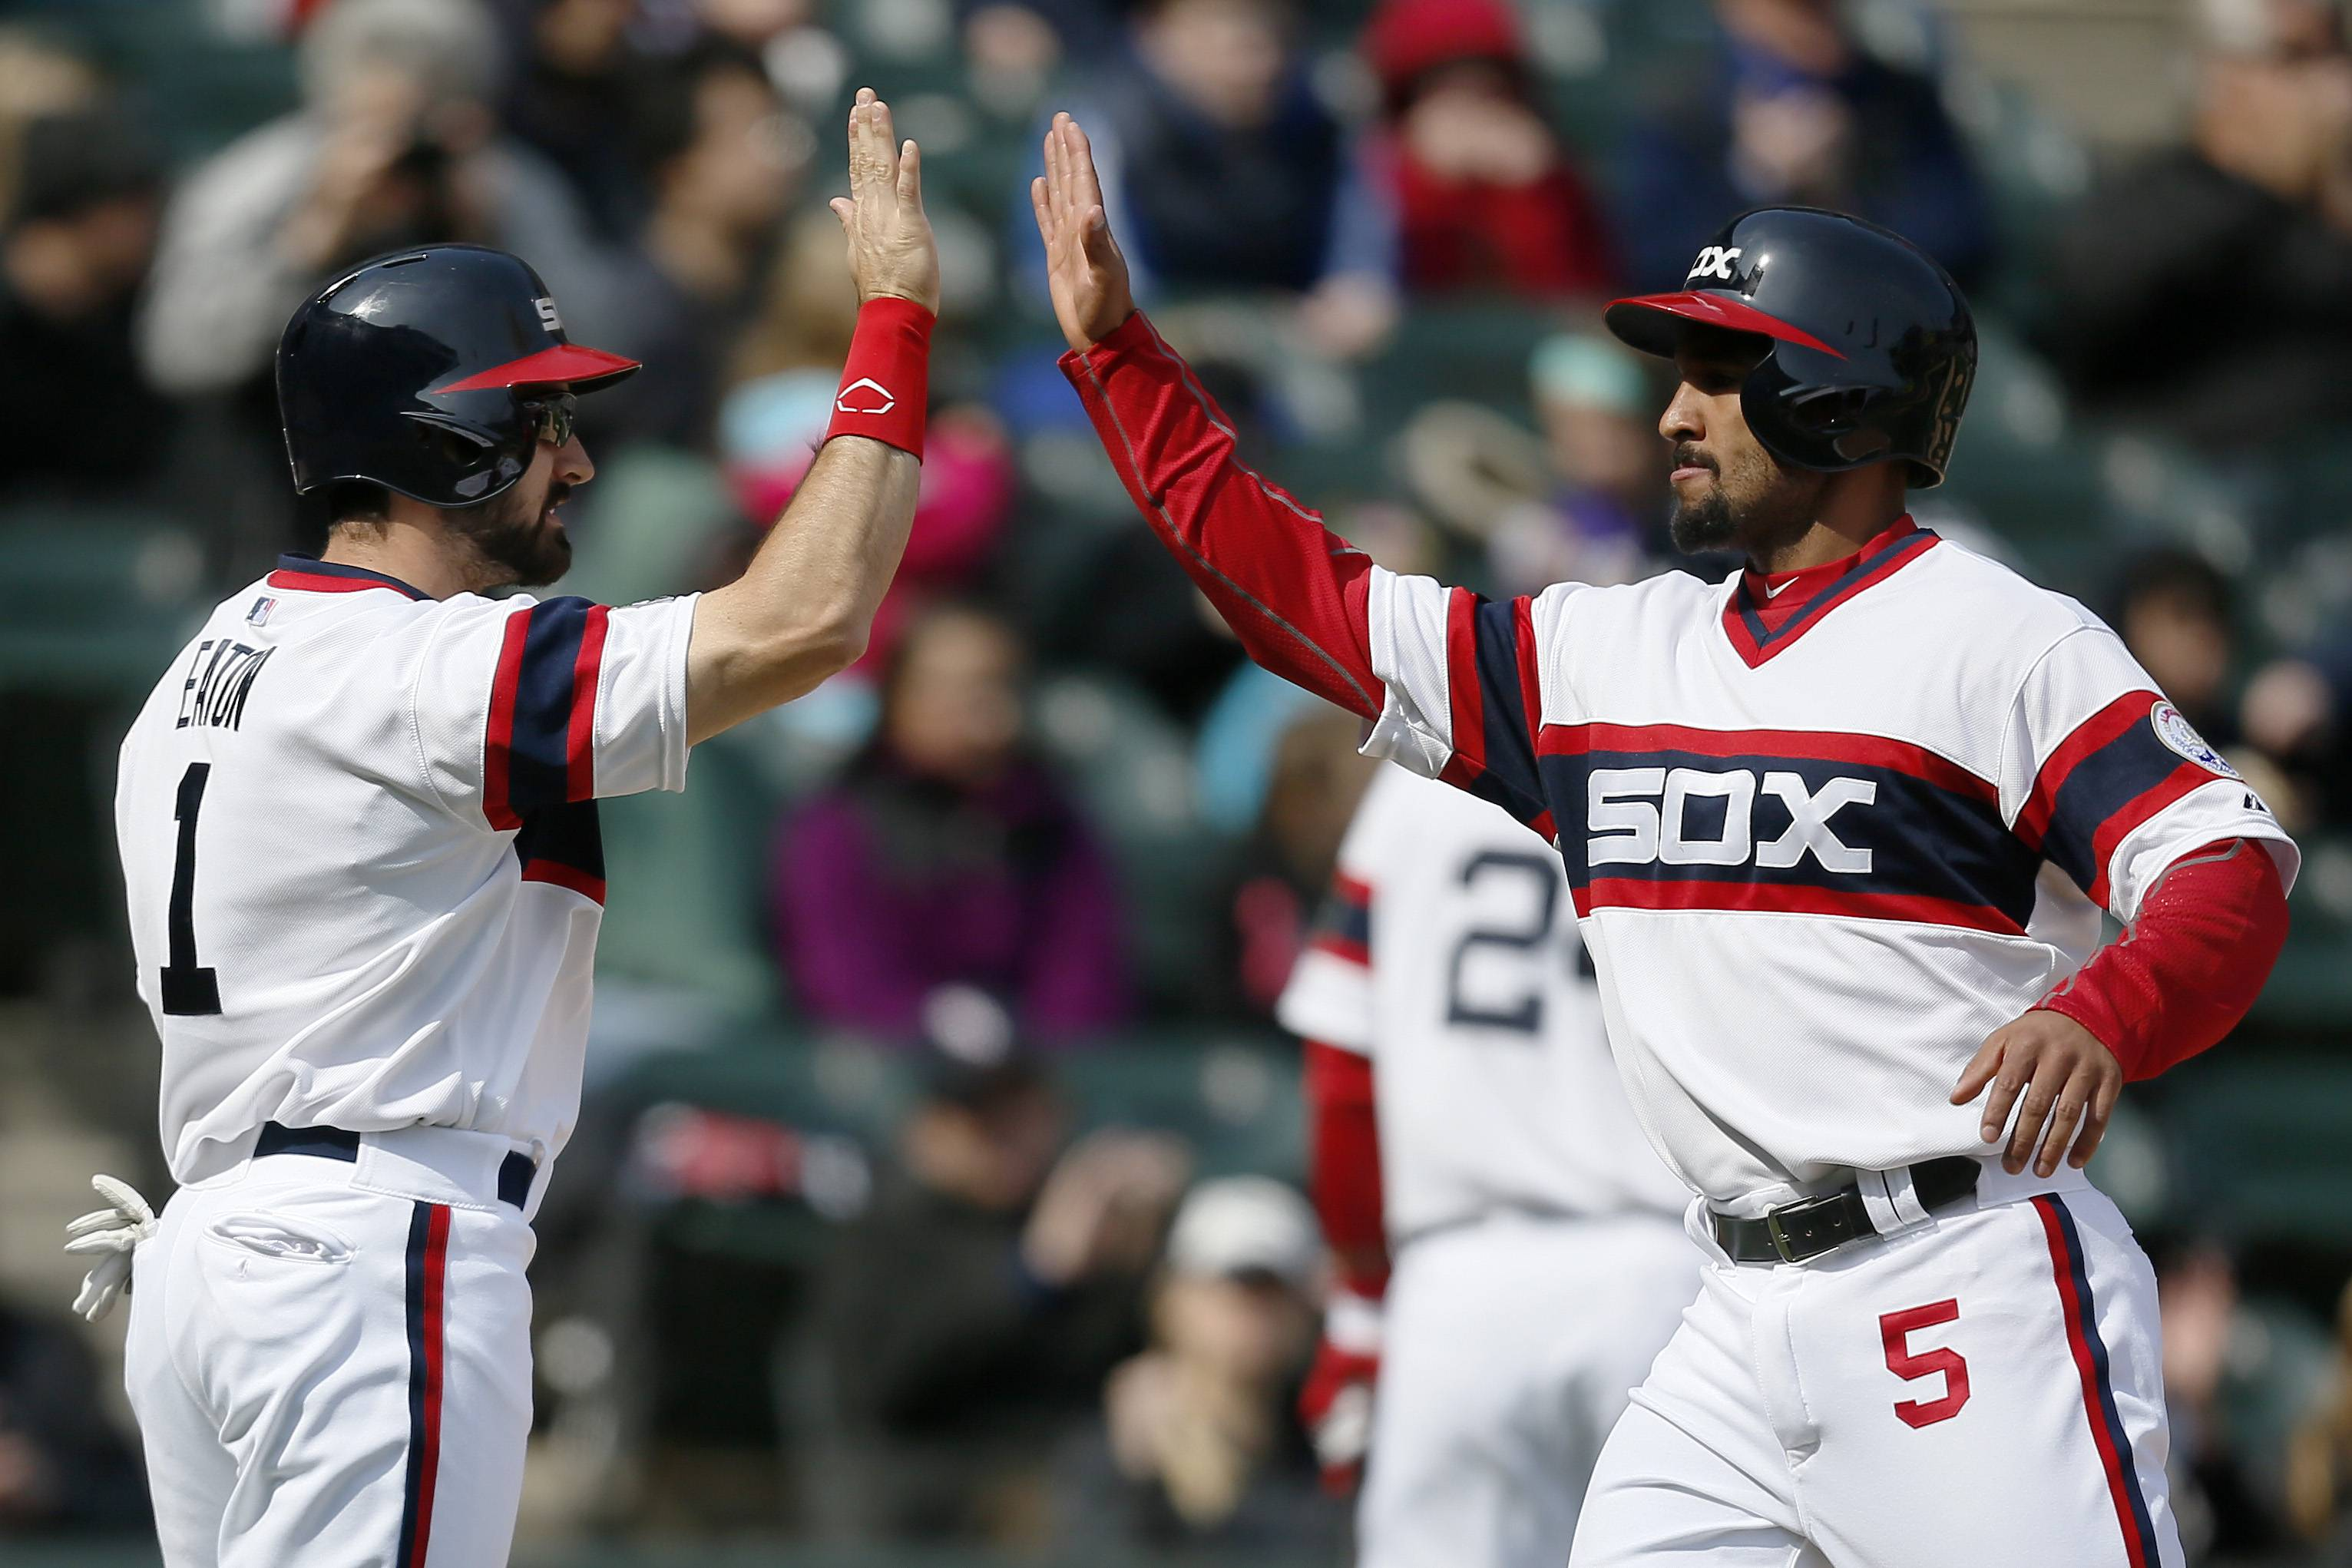 Chicago White Sox Adam Eaton, left, and Marcus Semien, right, high-five after scoring against the Tampa Bay Rays during the seventh inning of a baseball game, Sunday, April 27, 2014, in Chicago.